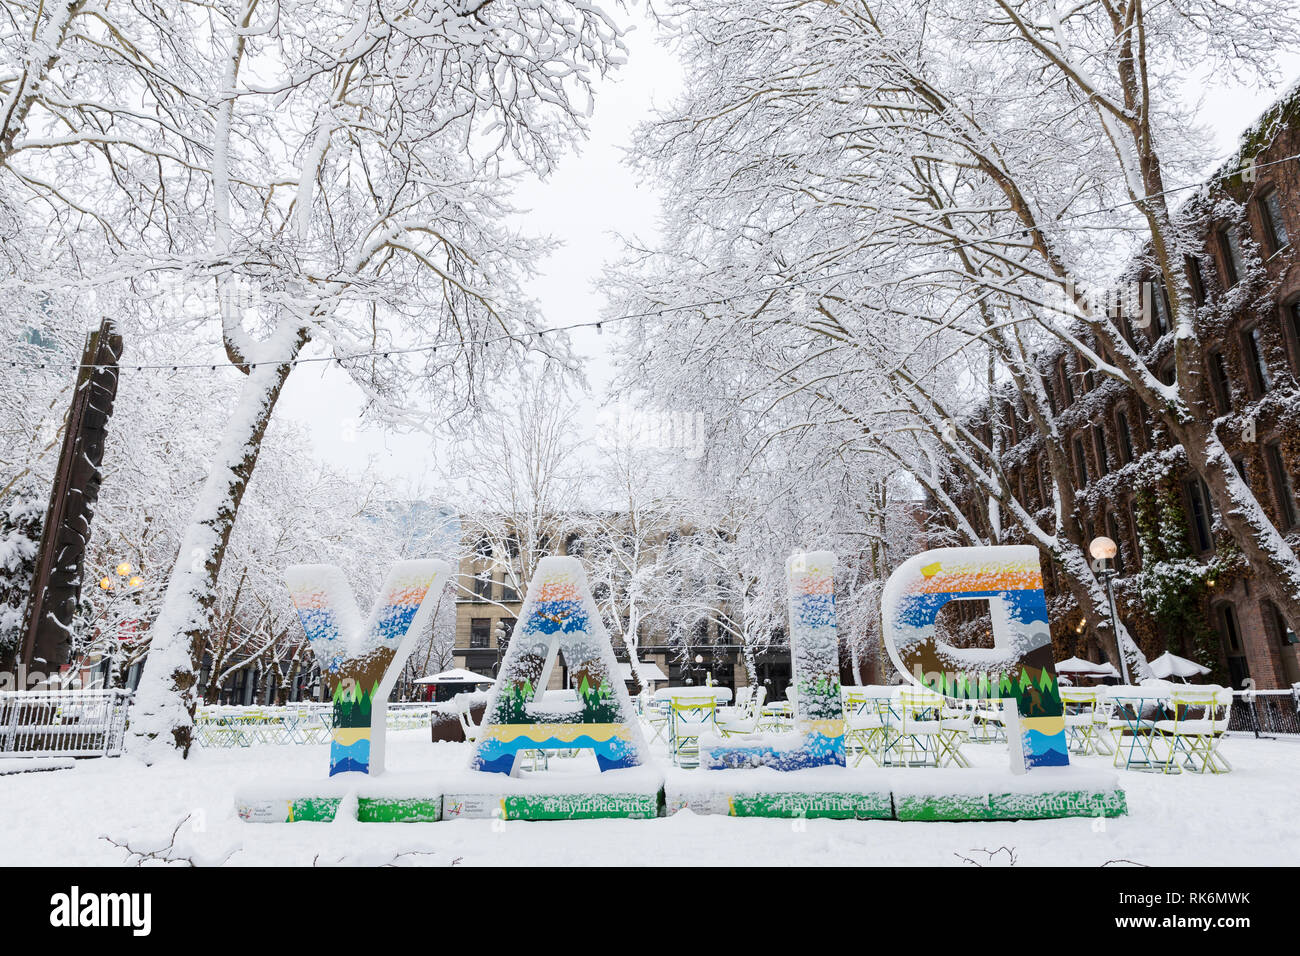 Washington, USA. 9th Feb 2019. Occidental Square is deserted as a strong winter storm blankets Seattle in six inches of snow. Credit: Paul Christian Gordon/Alamy Live News Stock Photo